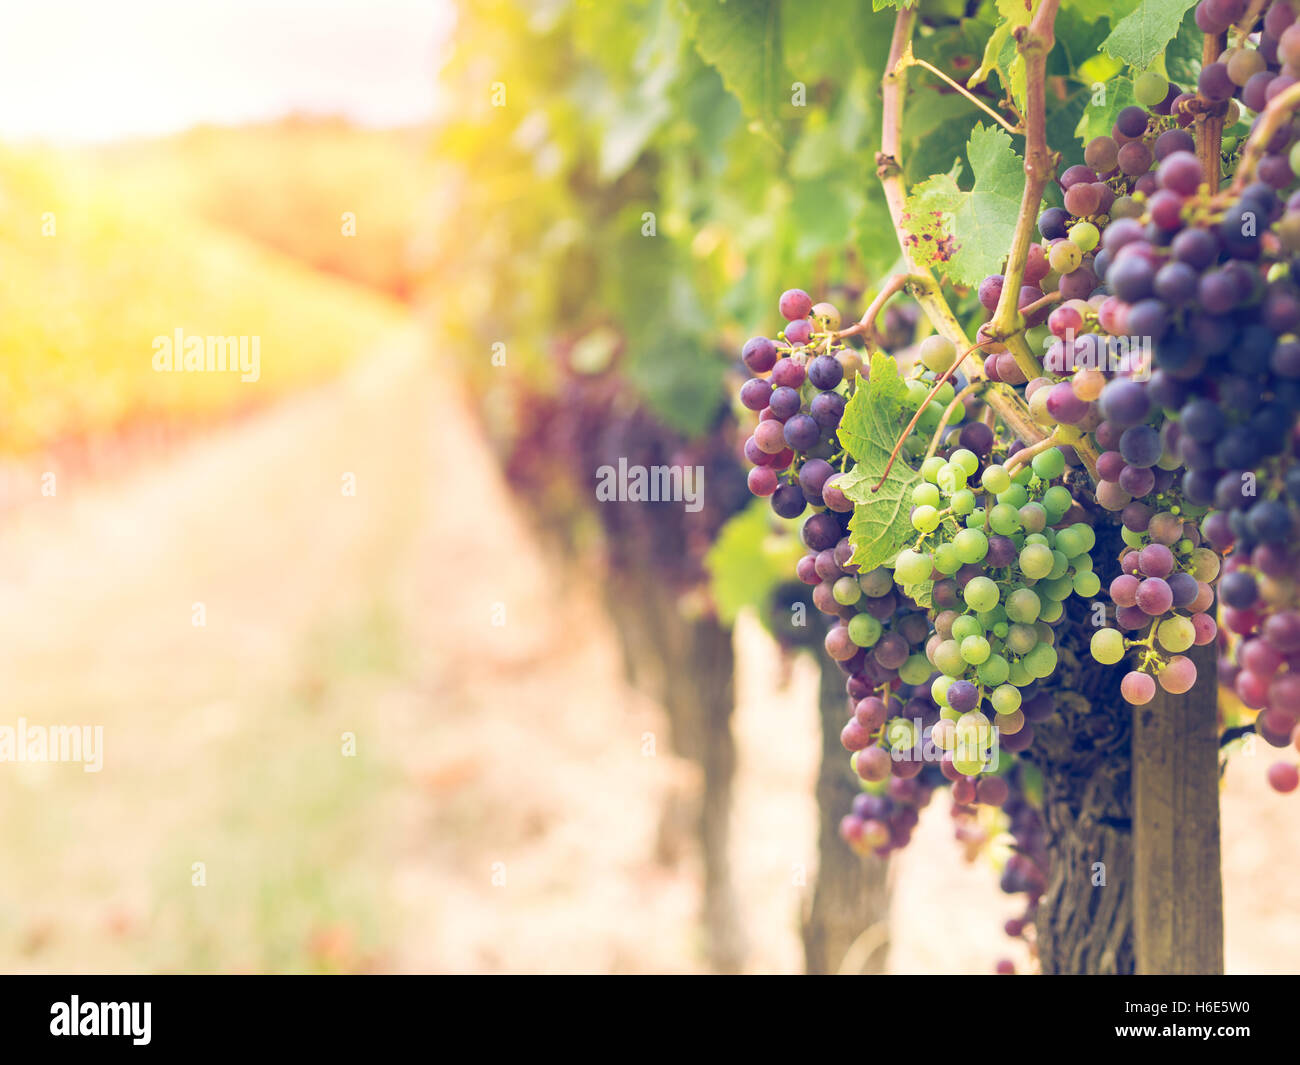 Bunches of cabernet sauvignon grapes growing in a vineyard in Bordeaux region, France. - Stock Image